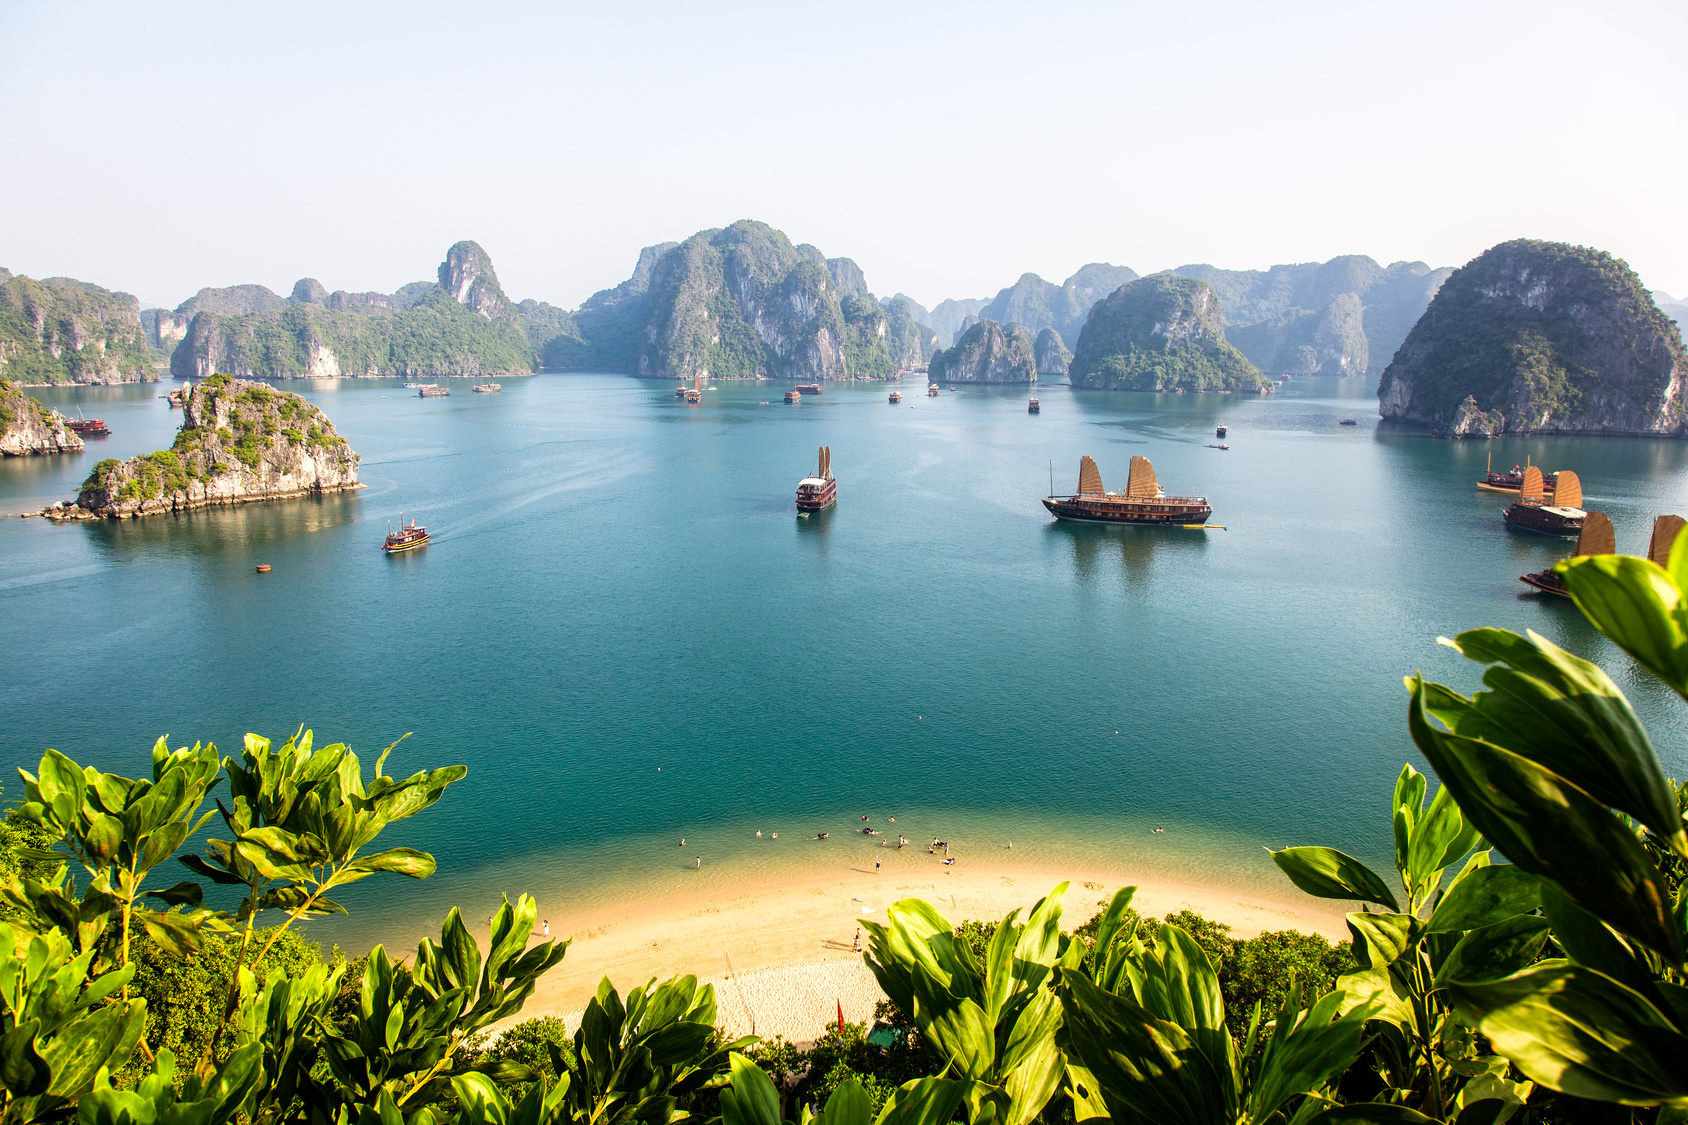 Halong Bay - THE TOP 5 Halong Bay Shore Excursions